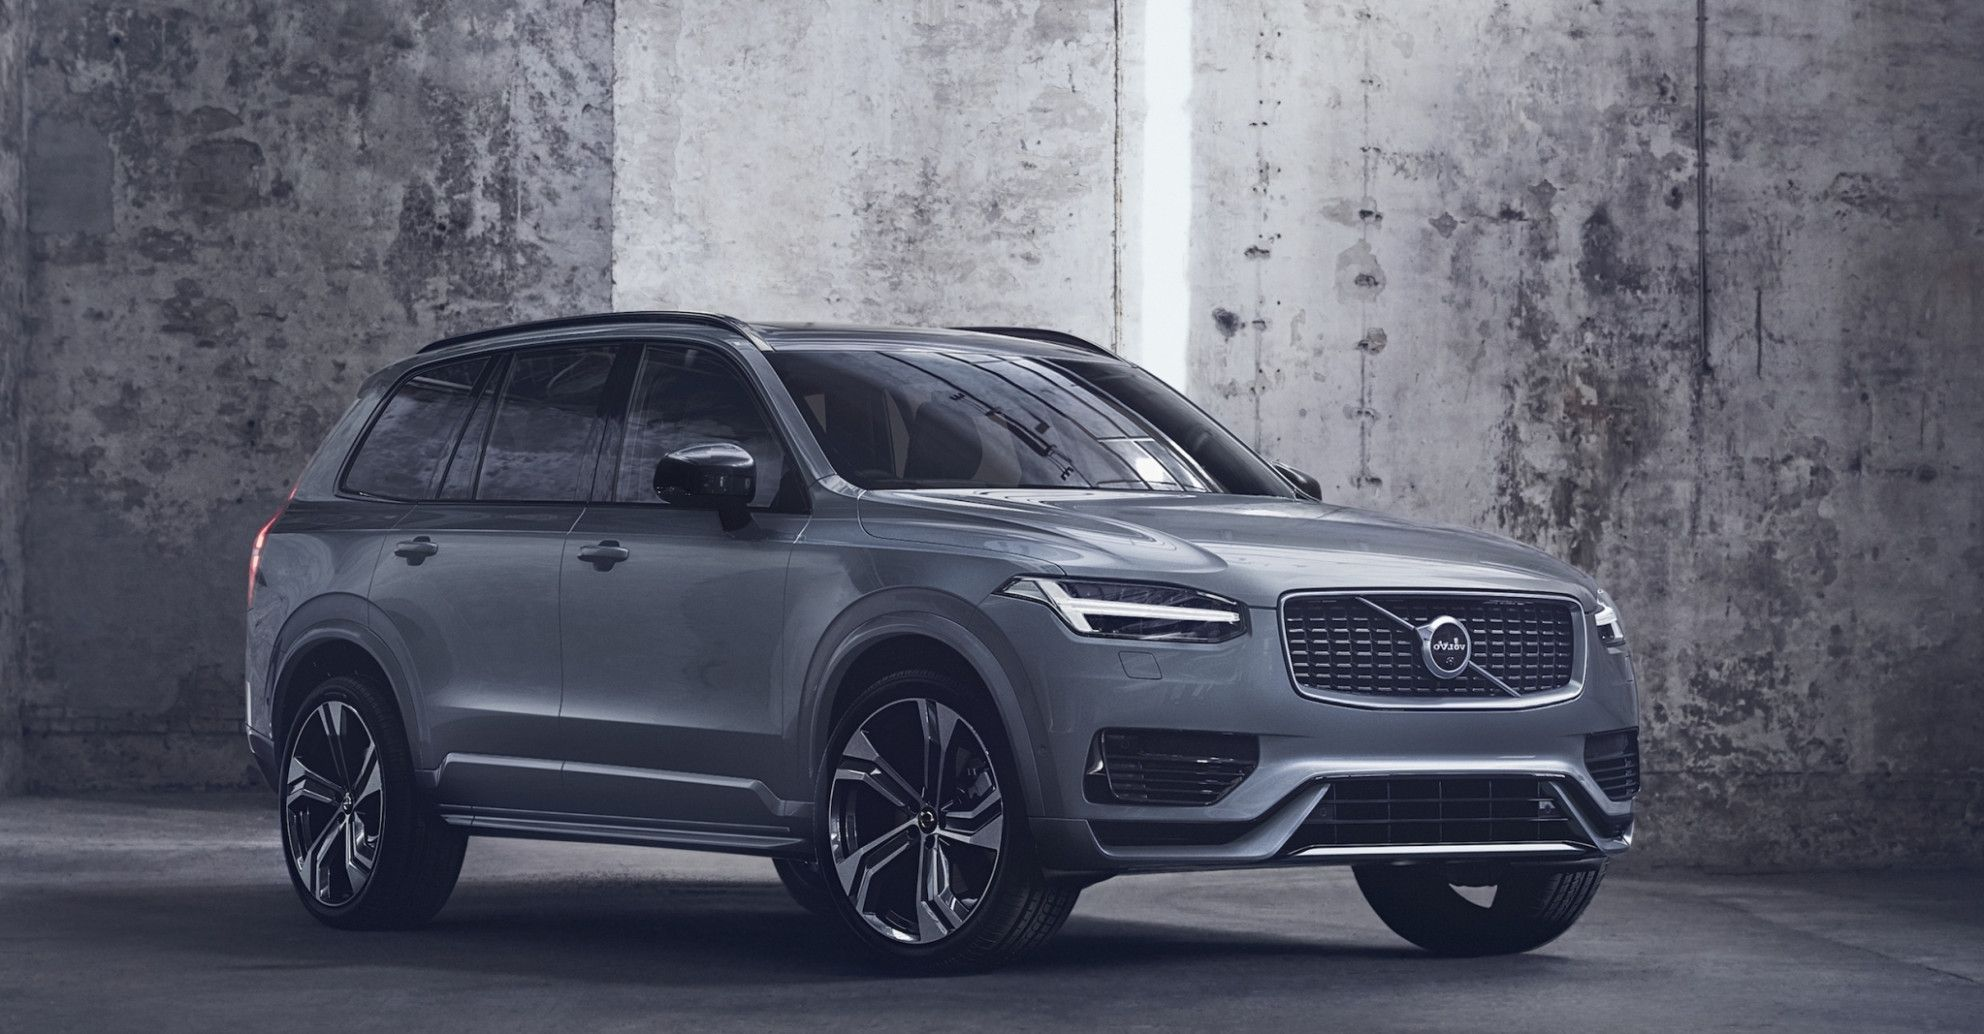 Five Secrets You Will Not Want To Know About Volvo Xc60 With Images Volvo Xc60 Volvo Volvo Cars